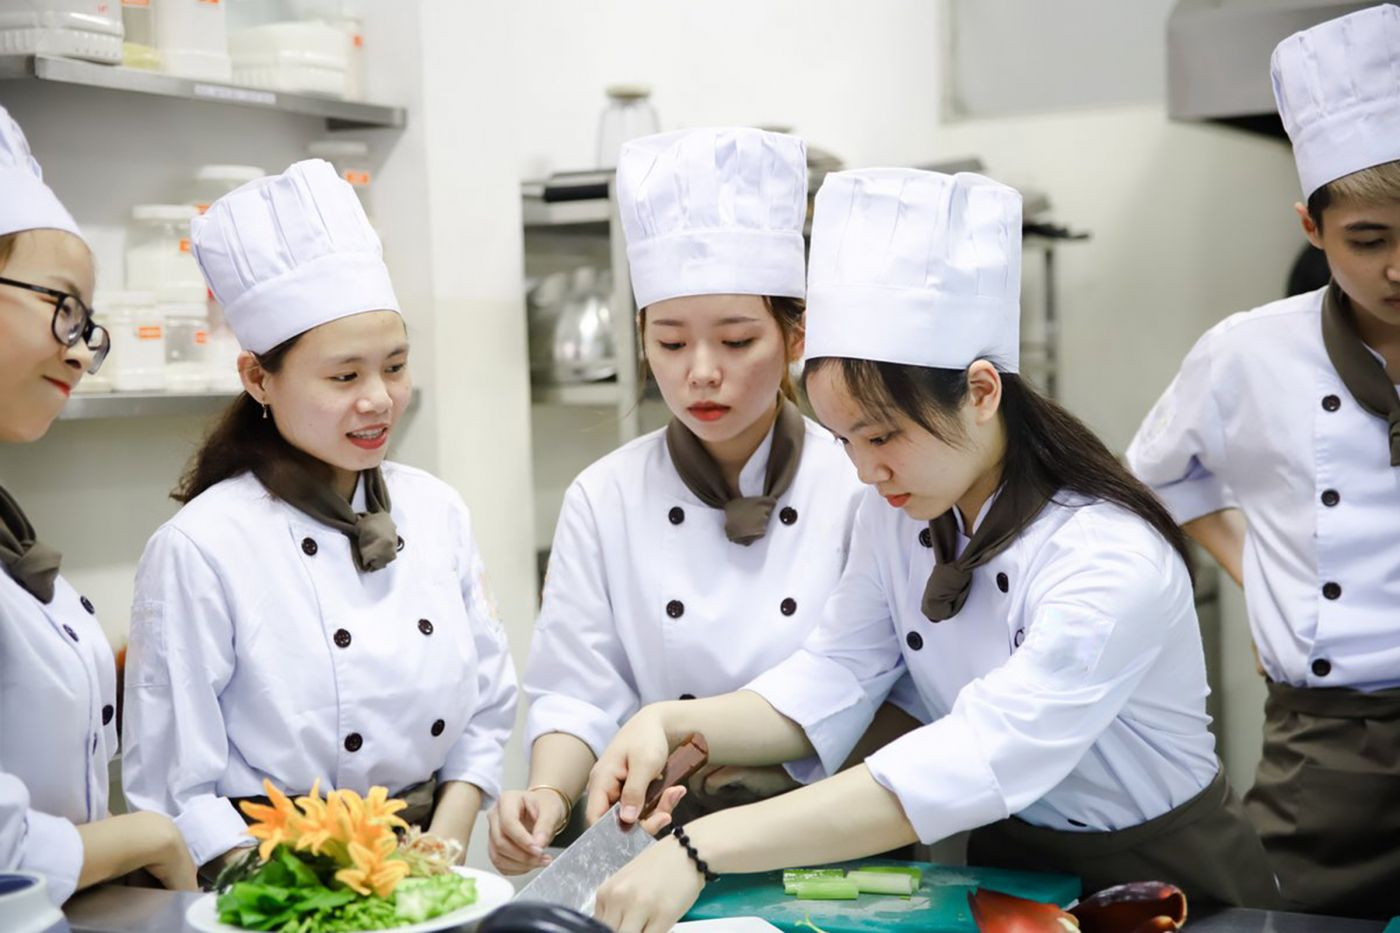 A group of young girls being trained on how to prepare food in a hotel kitchen. Our youth employment programme, in partnership with GFEMS, aims to support survivors of human trafficking gain the skills and experience they need to start a rewarding and lifelong career.